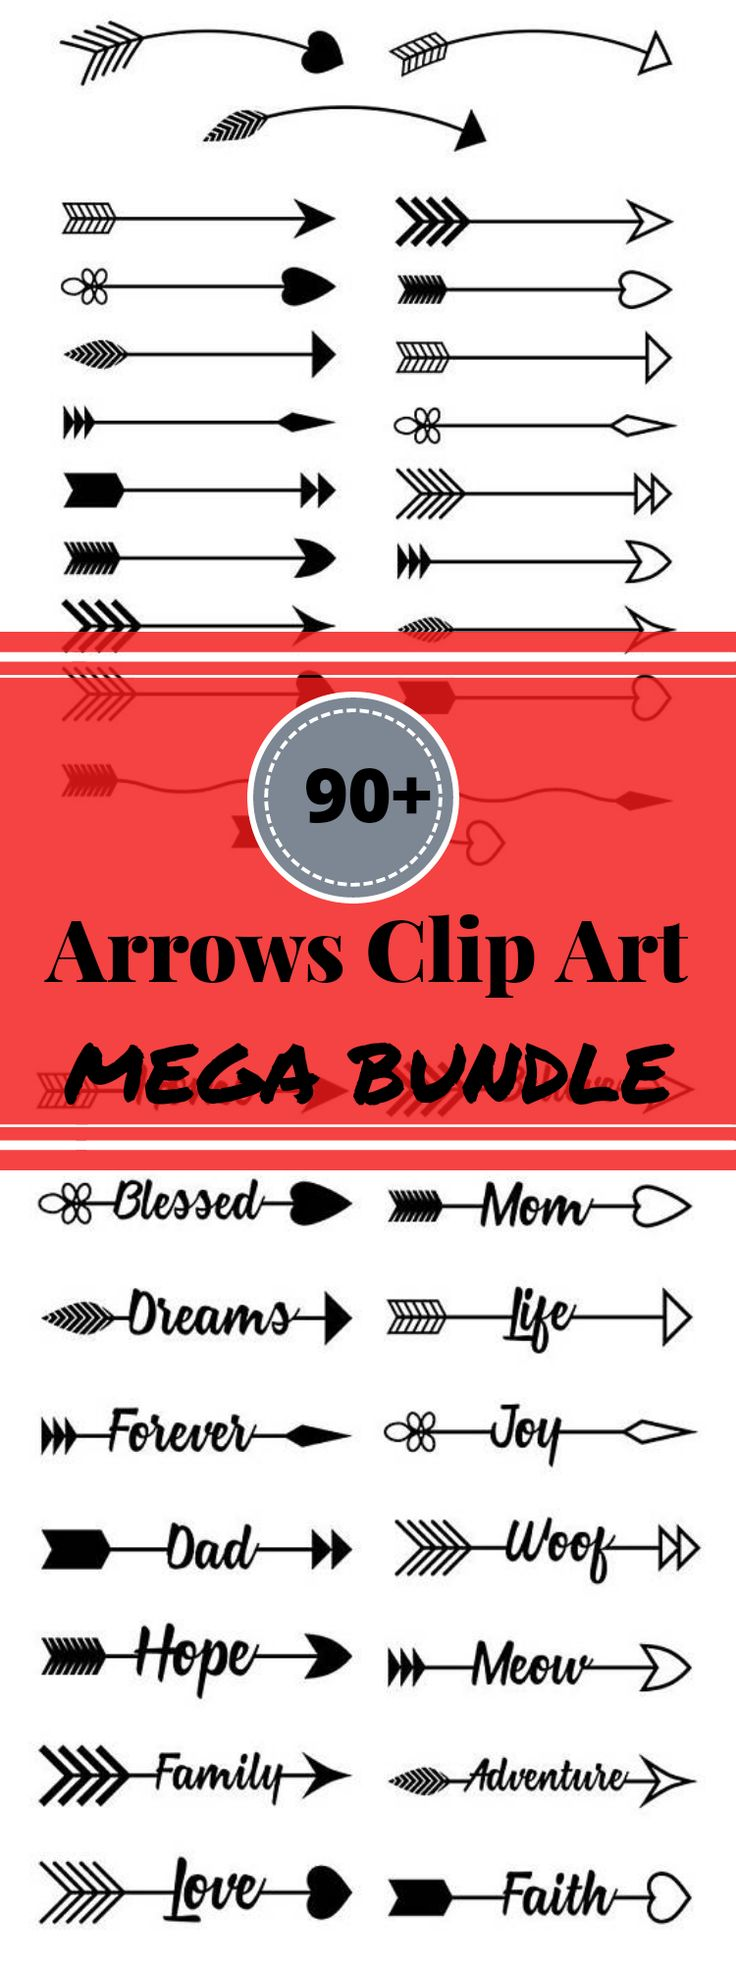 93 arrow vector clipart images (black rustic and colorful tribal / boho) for personal and commercial use! These arrows come in a variety of styles and colors for ultimate versatility in your projects. Use them in DIY wedding invitations, printable wall art, bullet journals, handmade cards, scrapbooking, or as blog graphics! Tribal Arrow Clipart, Rustic Arrow Clipart, Arrow SVG, Vector Arrows, Arrow Wreath Clipart, Commercial Use #clipart #png #ad #graphics #printable #bulletjournals #etsy